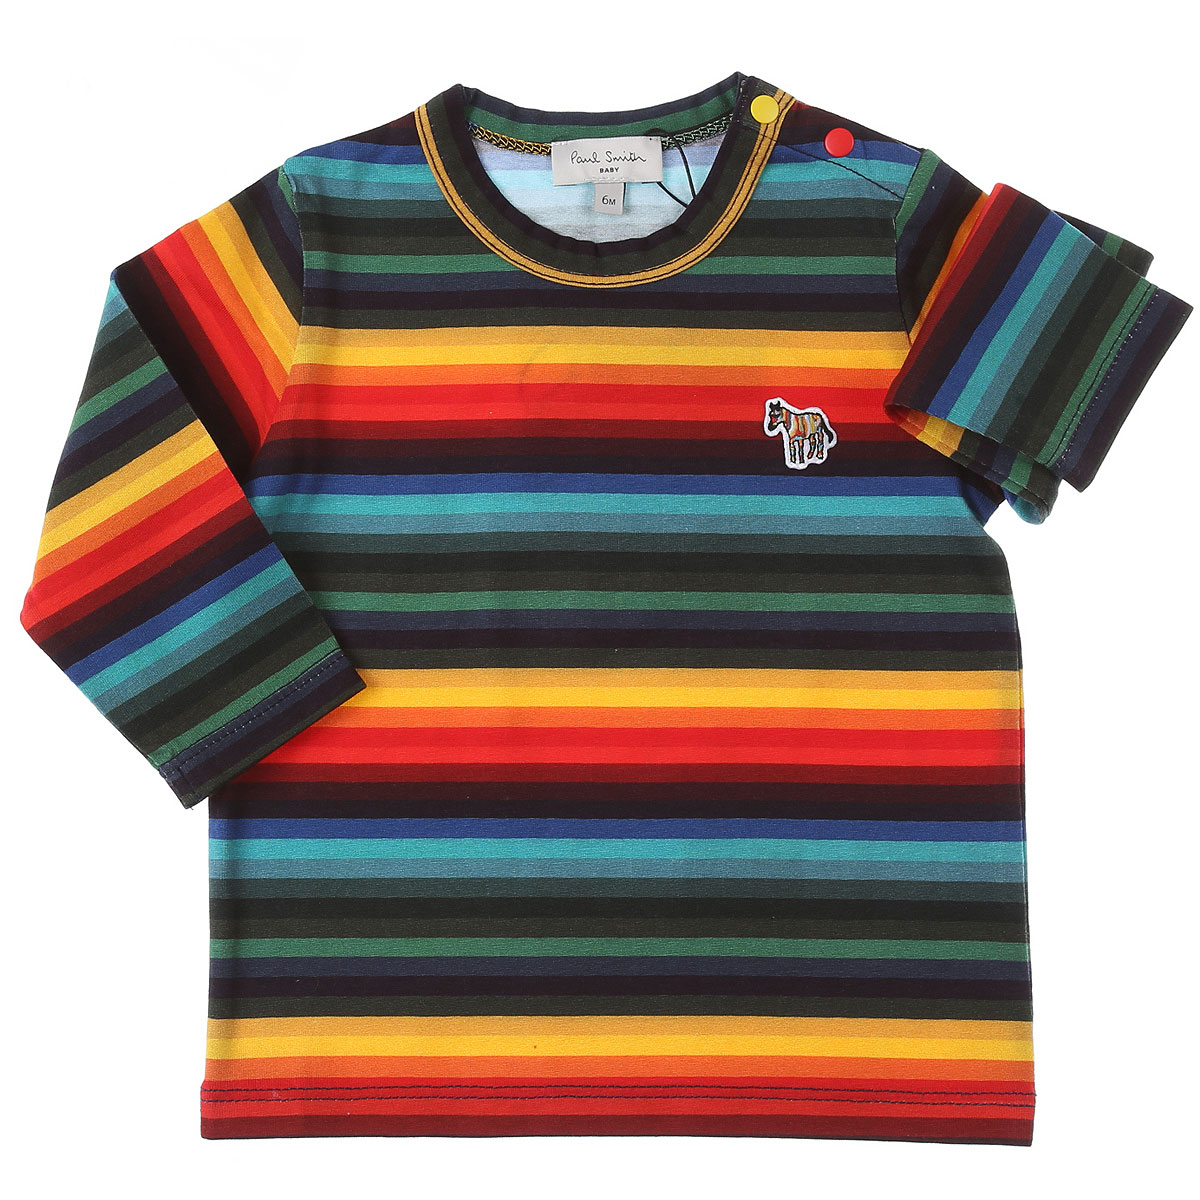 Paul Smith Baby T-Shirt for Boys On Sale, Multicolor, Cotton, 2019, 12 M 18M 2Y 3Y 6M 9M